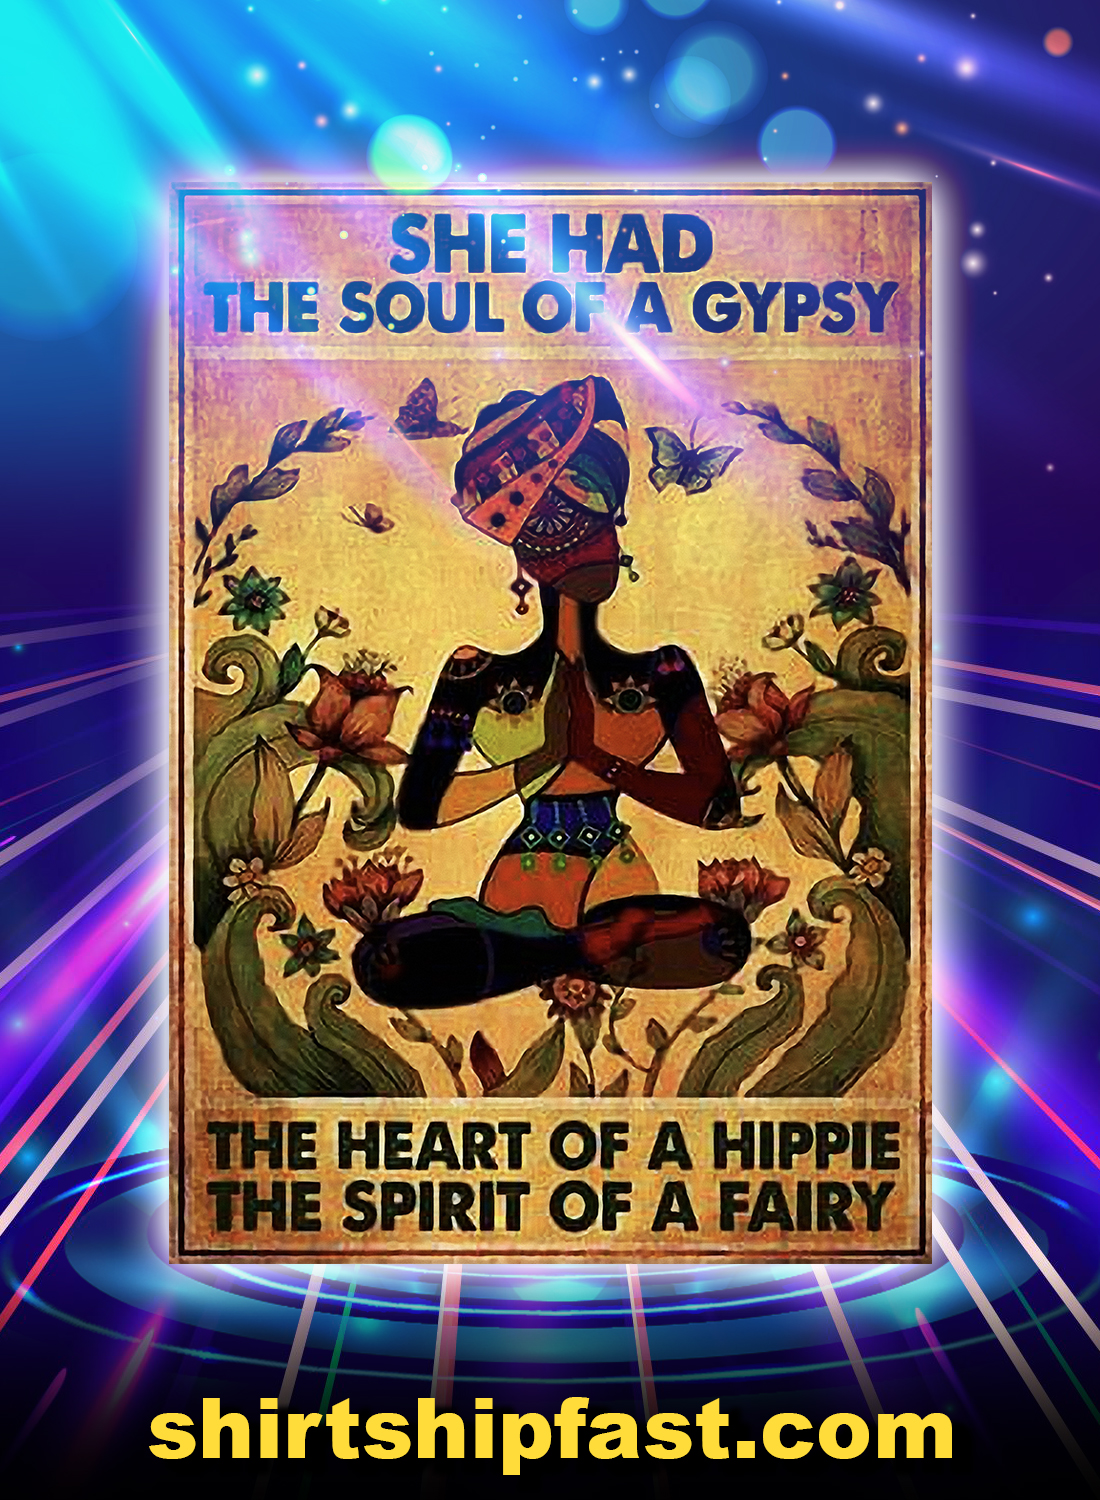 Black girl yoga she had the soul of a gypsy poster - A4